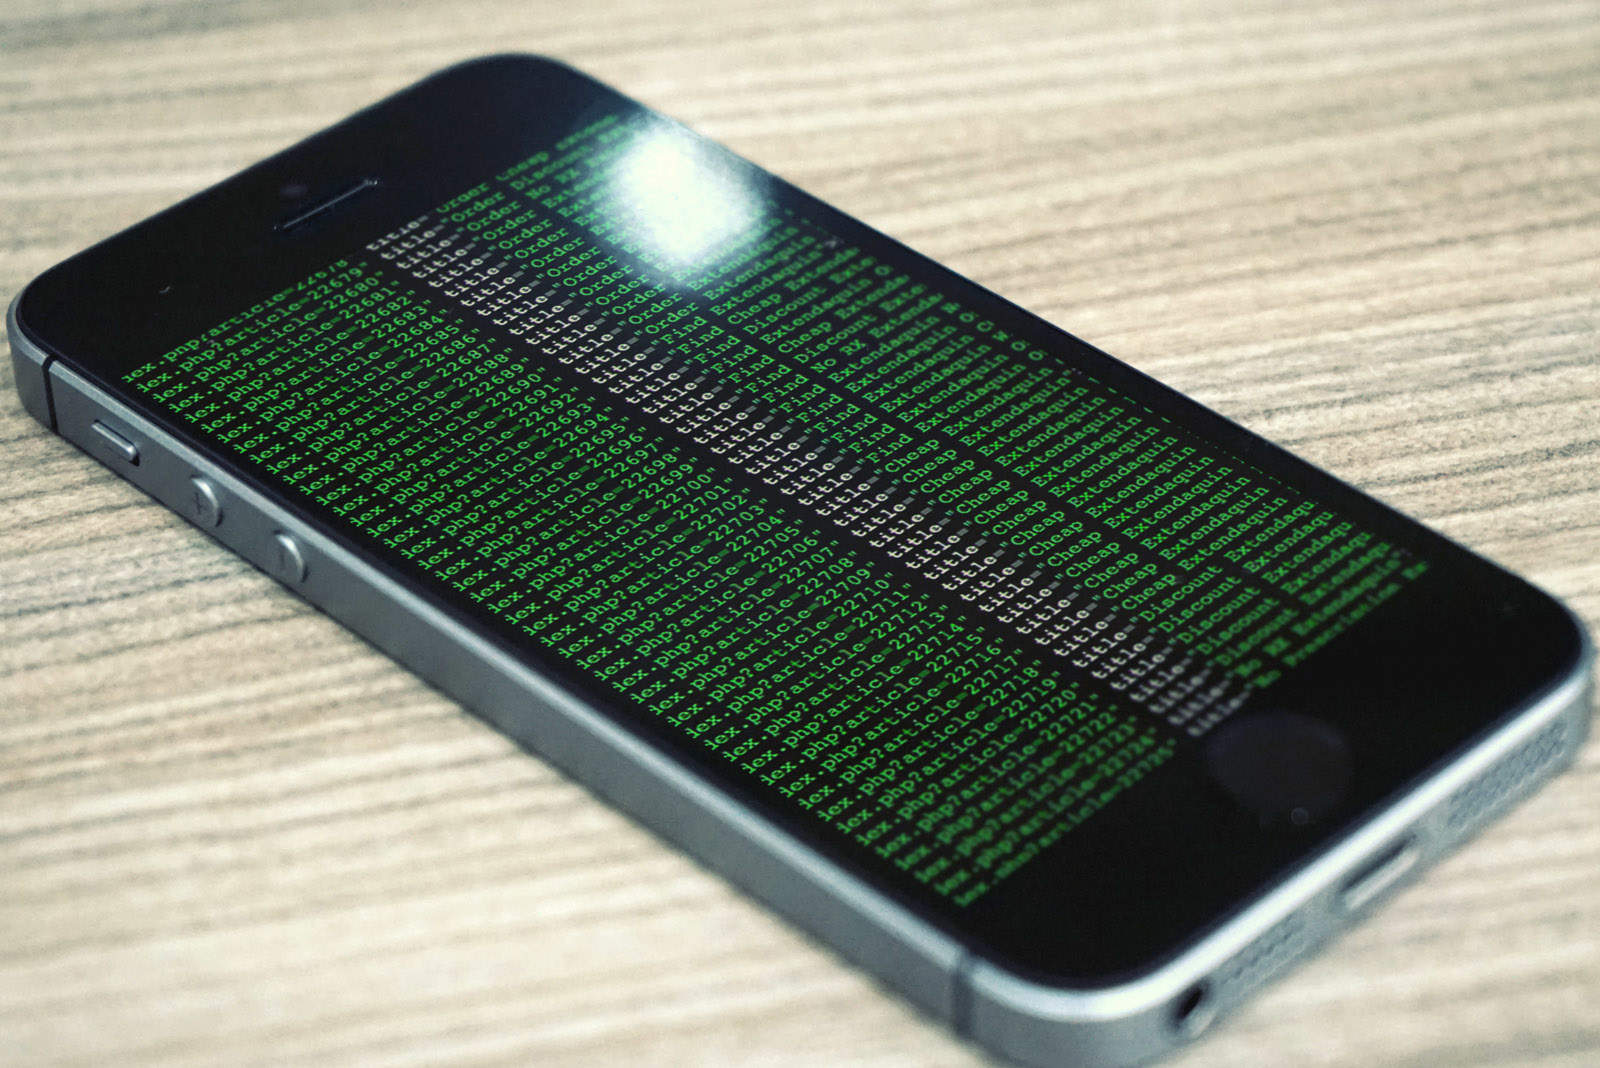 Want to see if your iPhone's hacked? There's an app for that